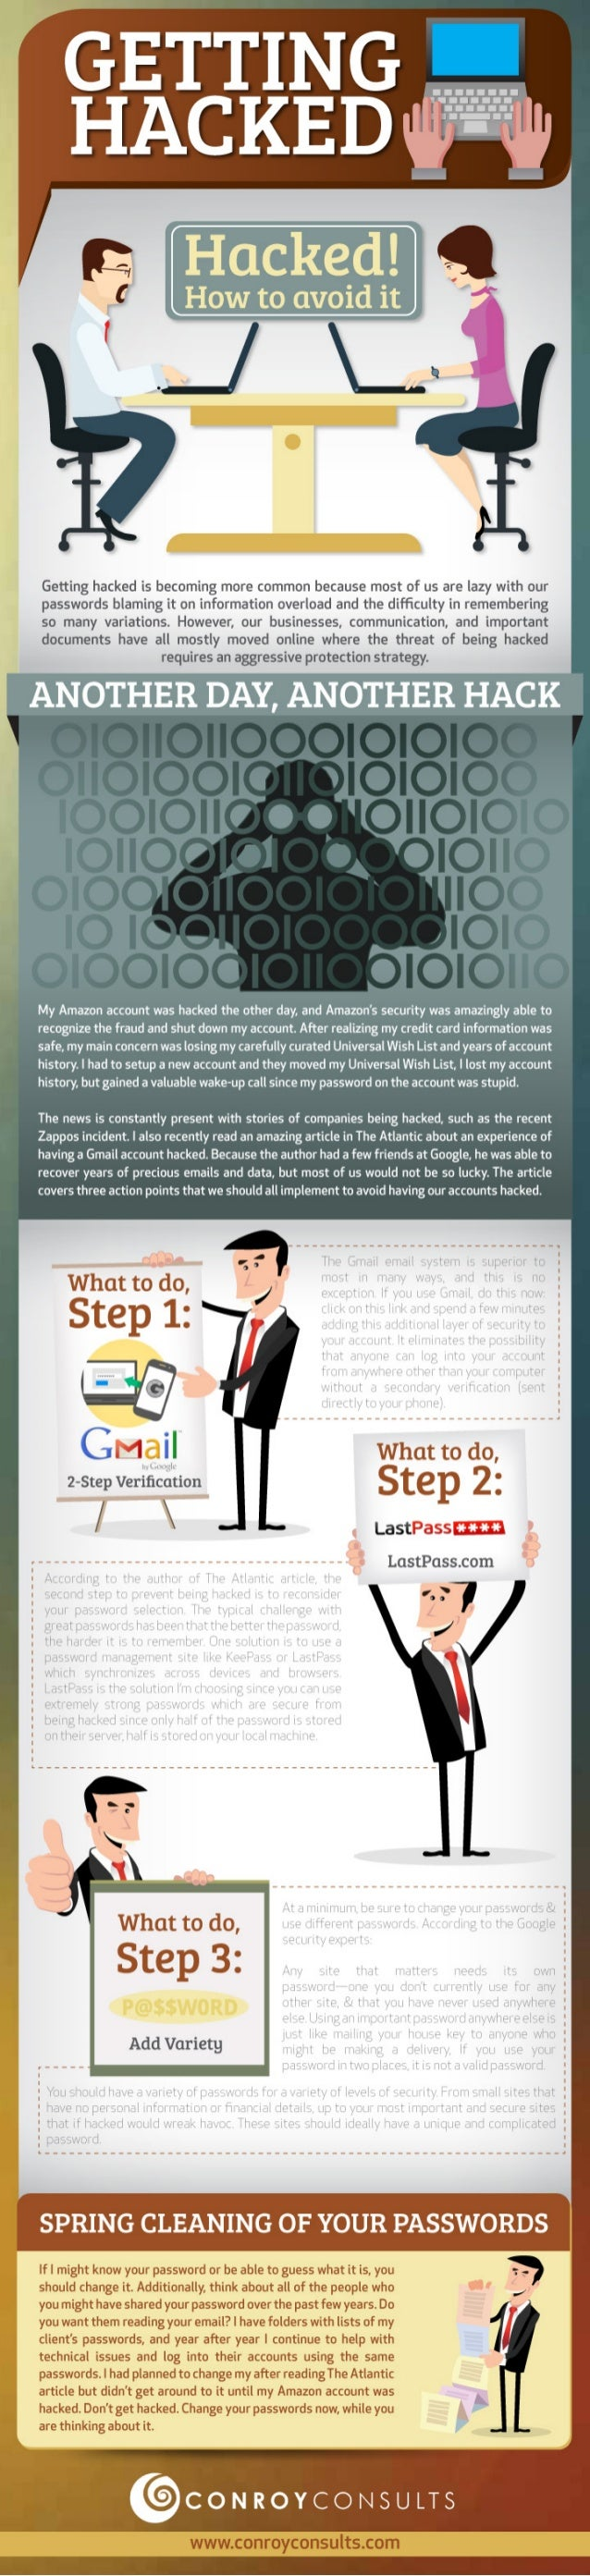 Getting Hacked Infographic by Conroy Consults for Law Firm Website